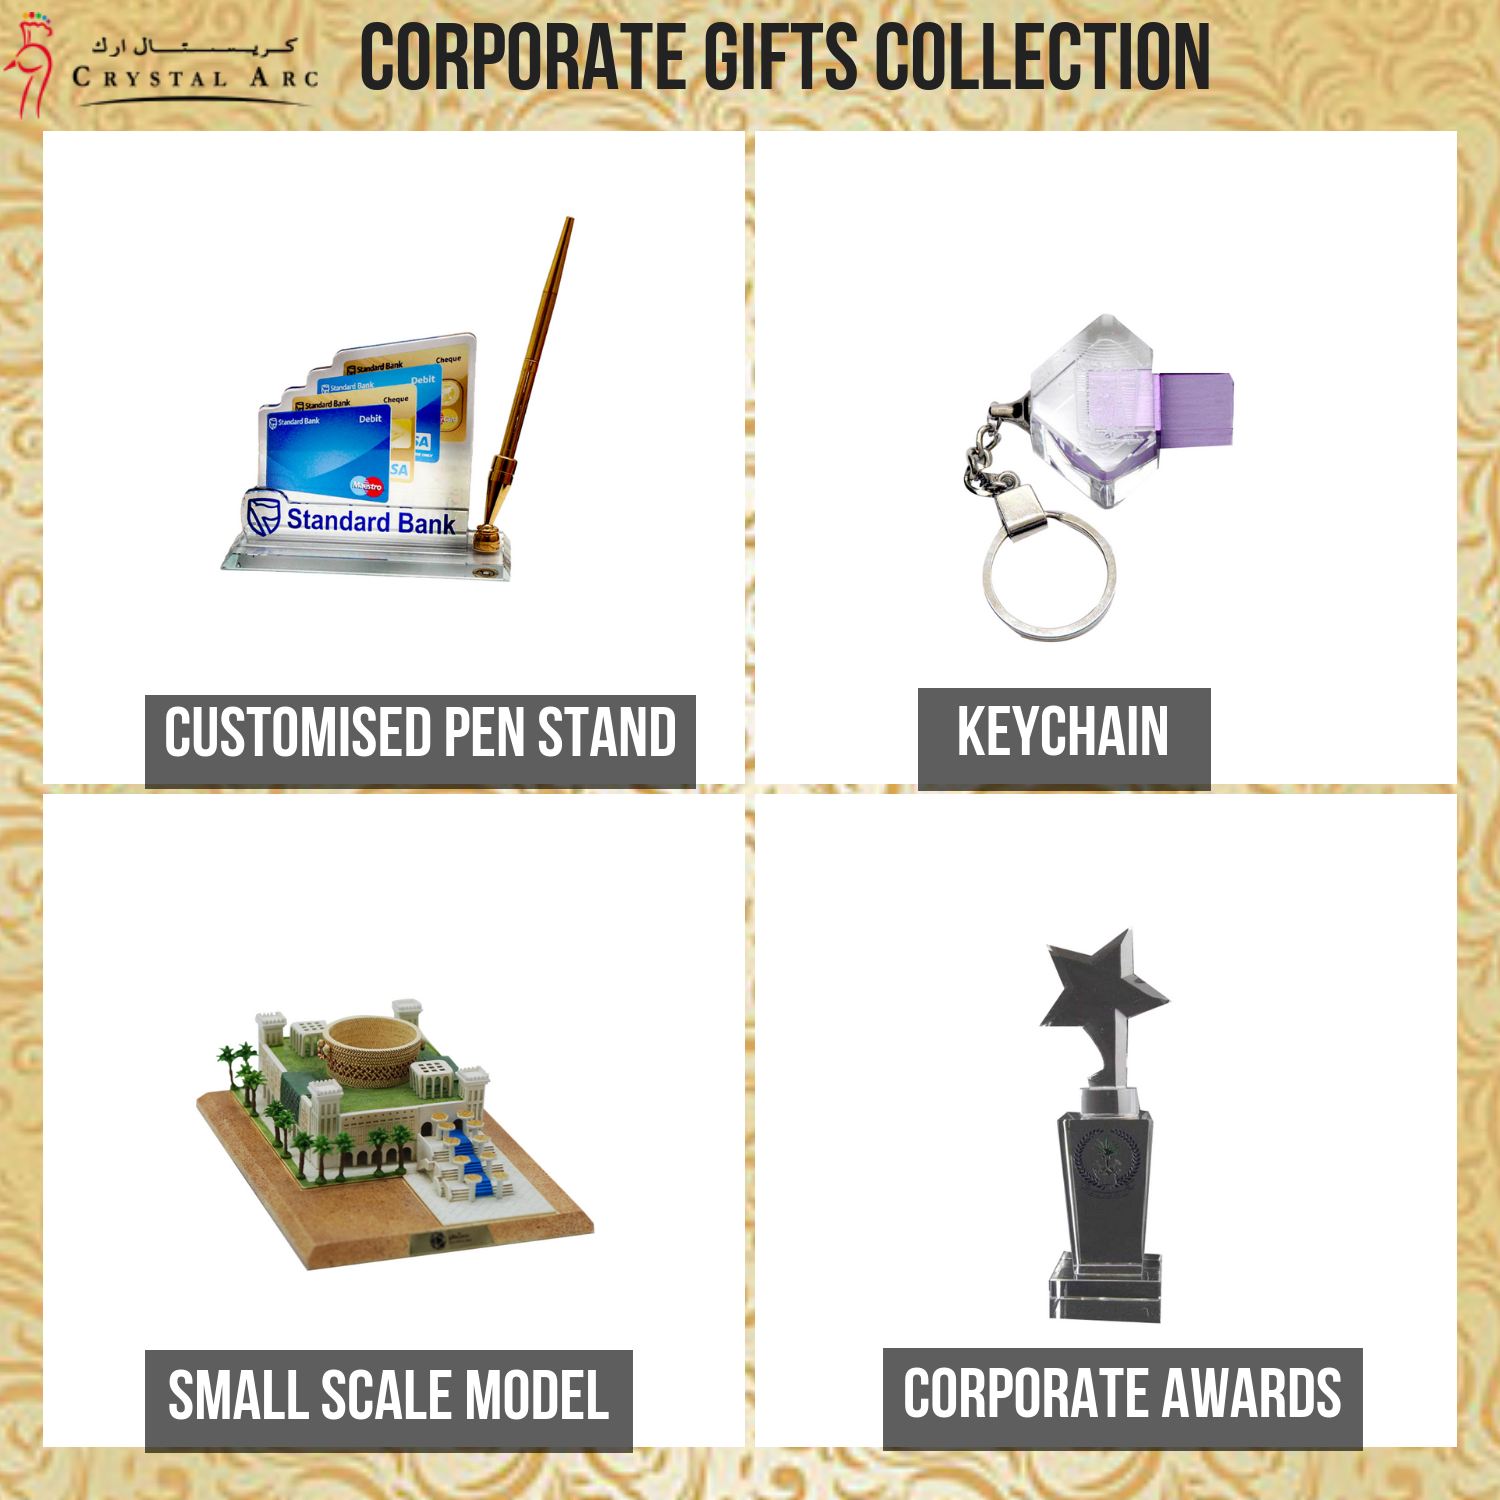 Business Gifts Collection: Are Looking For #corporategifts Ideas? Then Crystal Arc Is